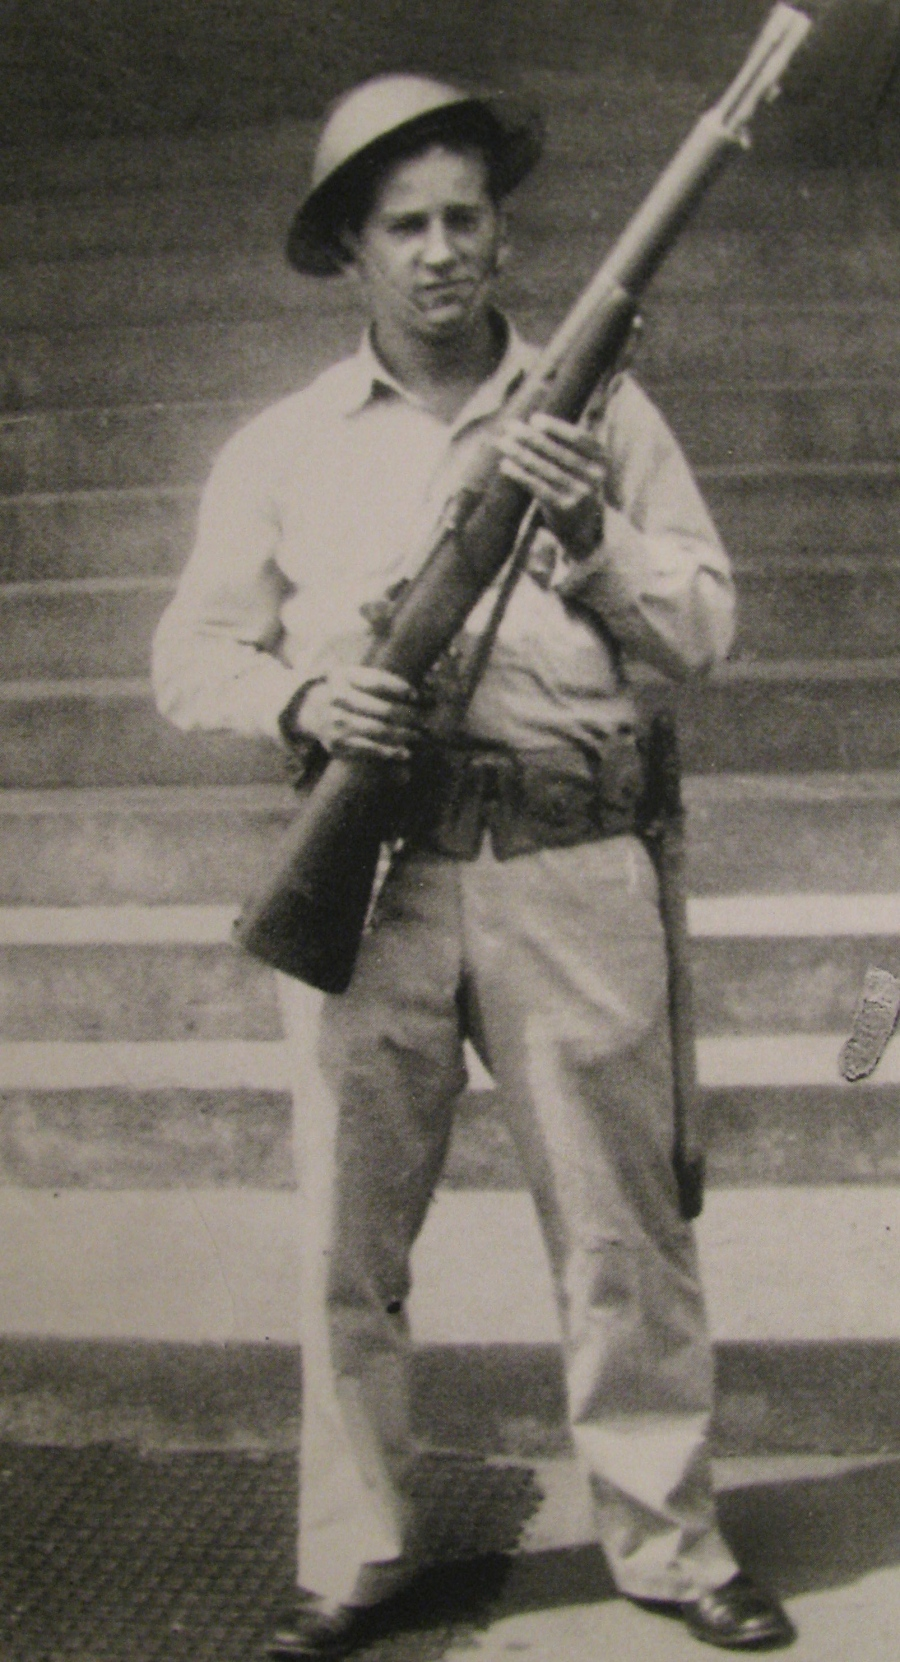 Pvt. Marty Mestre holds an M-1 rifle for this picture taken in Hawaii in 1943. Note the World War I helmet he's wearing. Photo provided by Marty Mestre